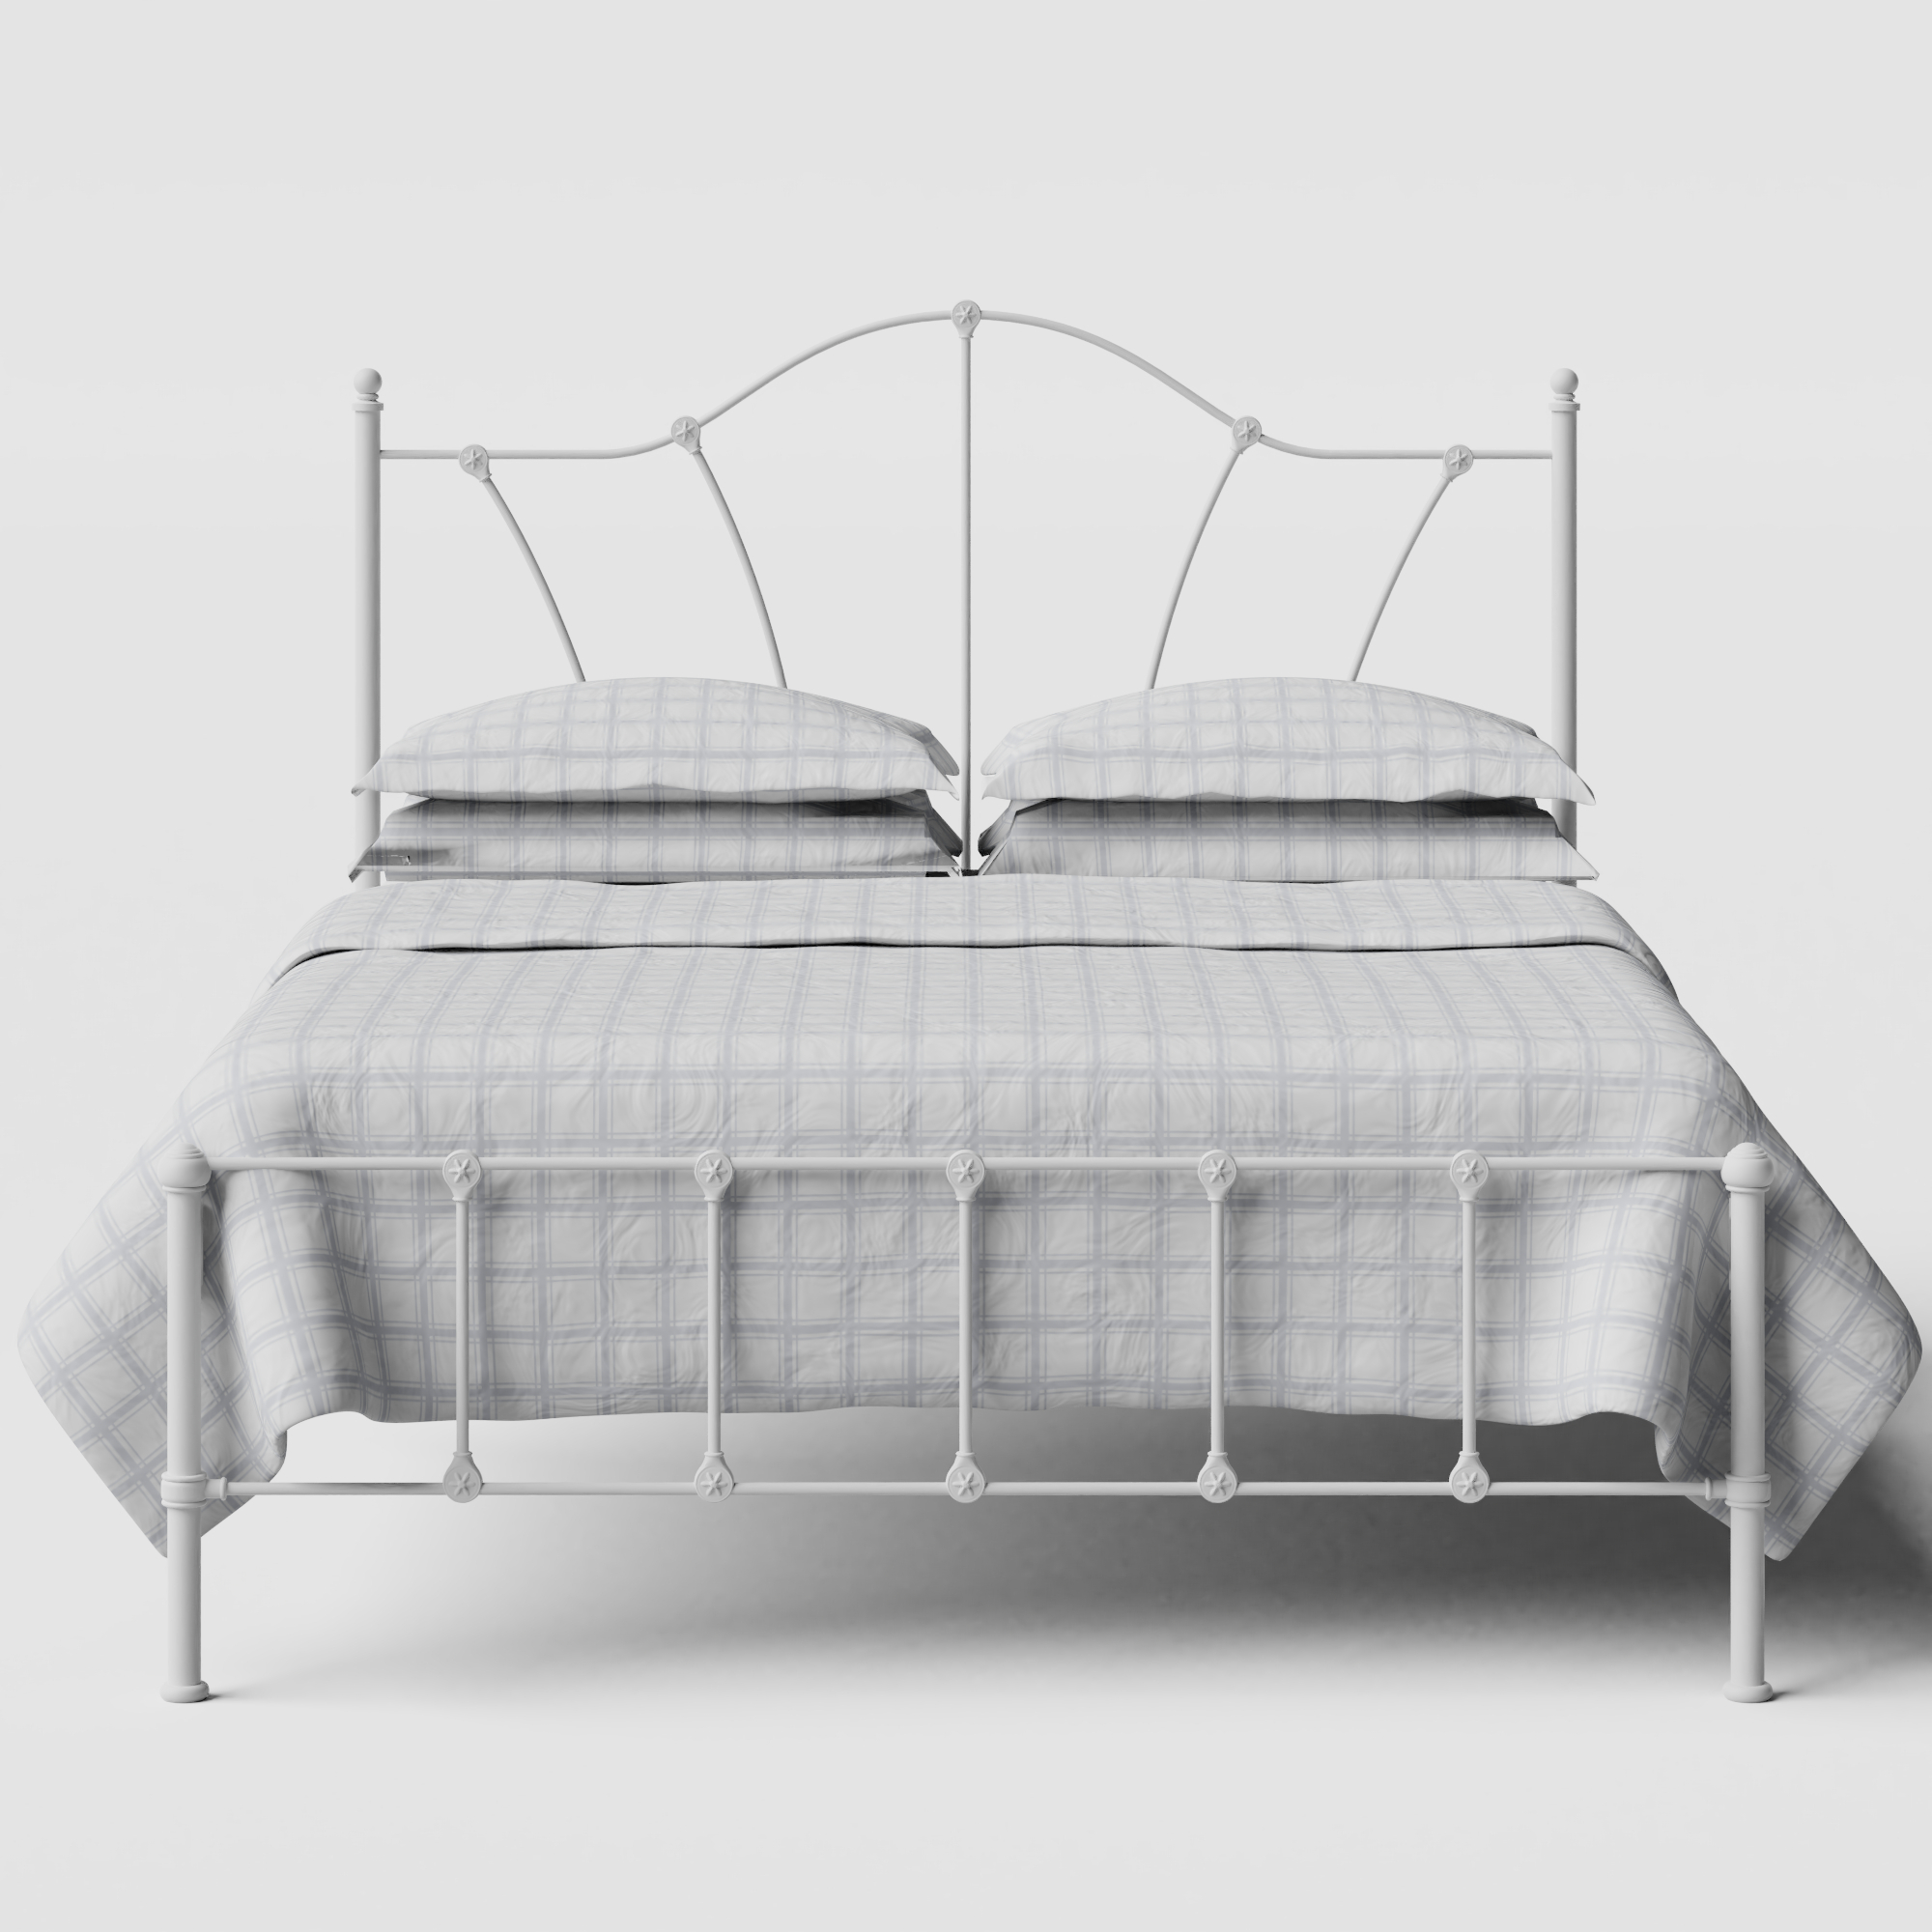 Claudia iron/metal bed in white